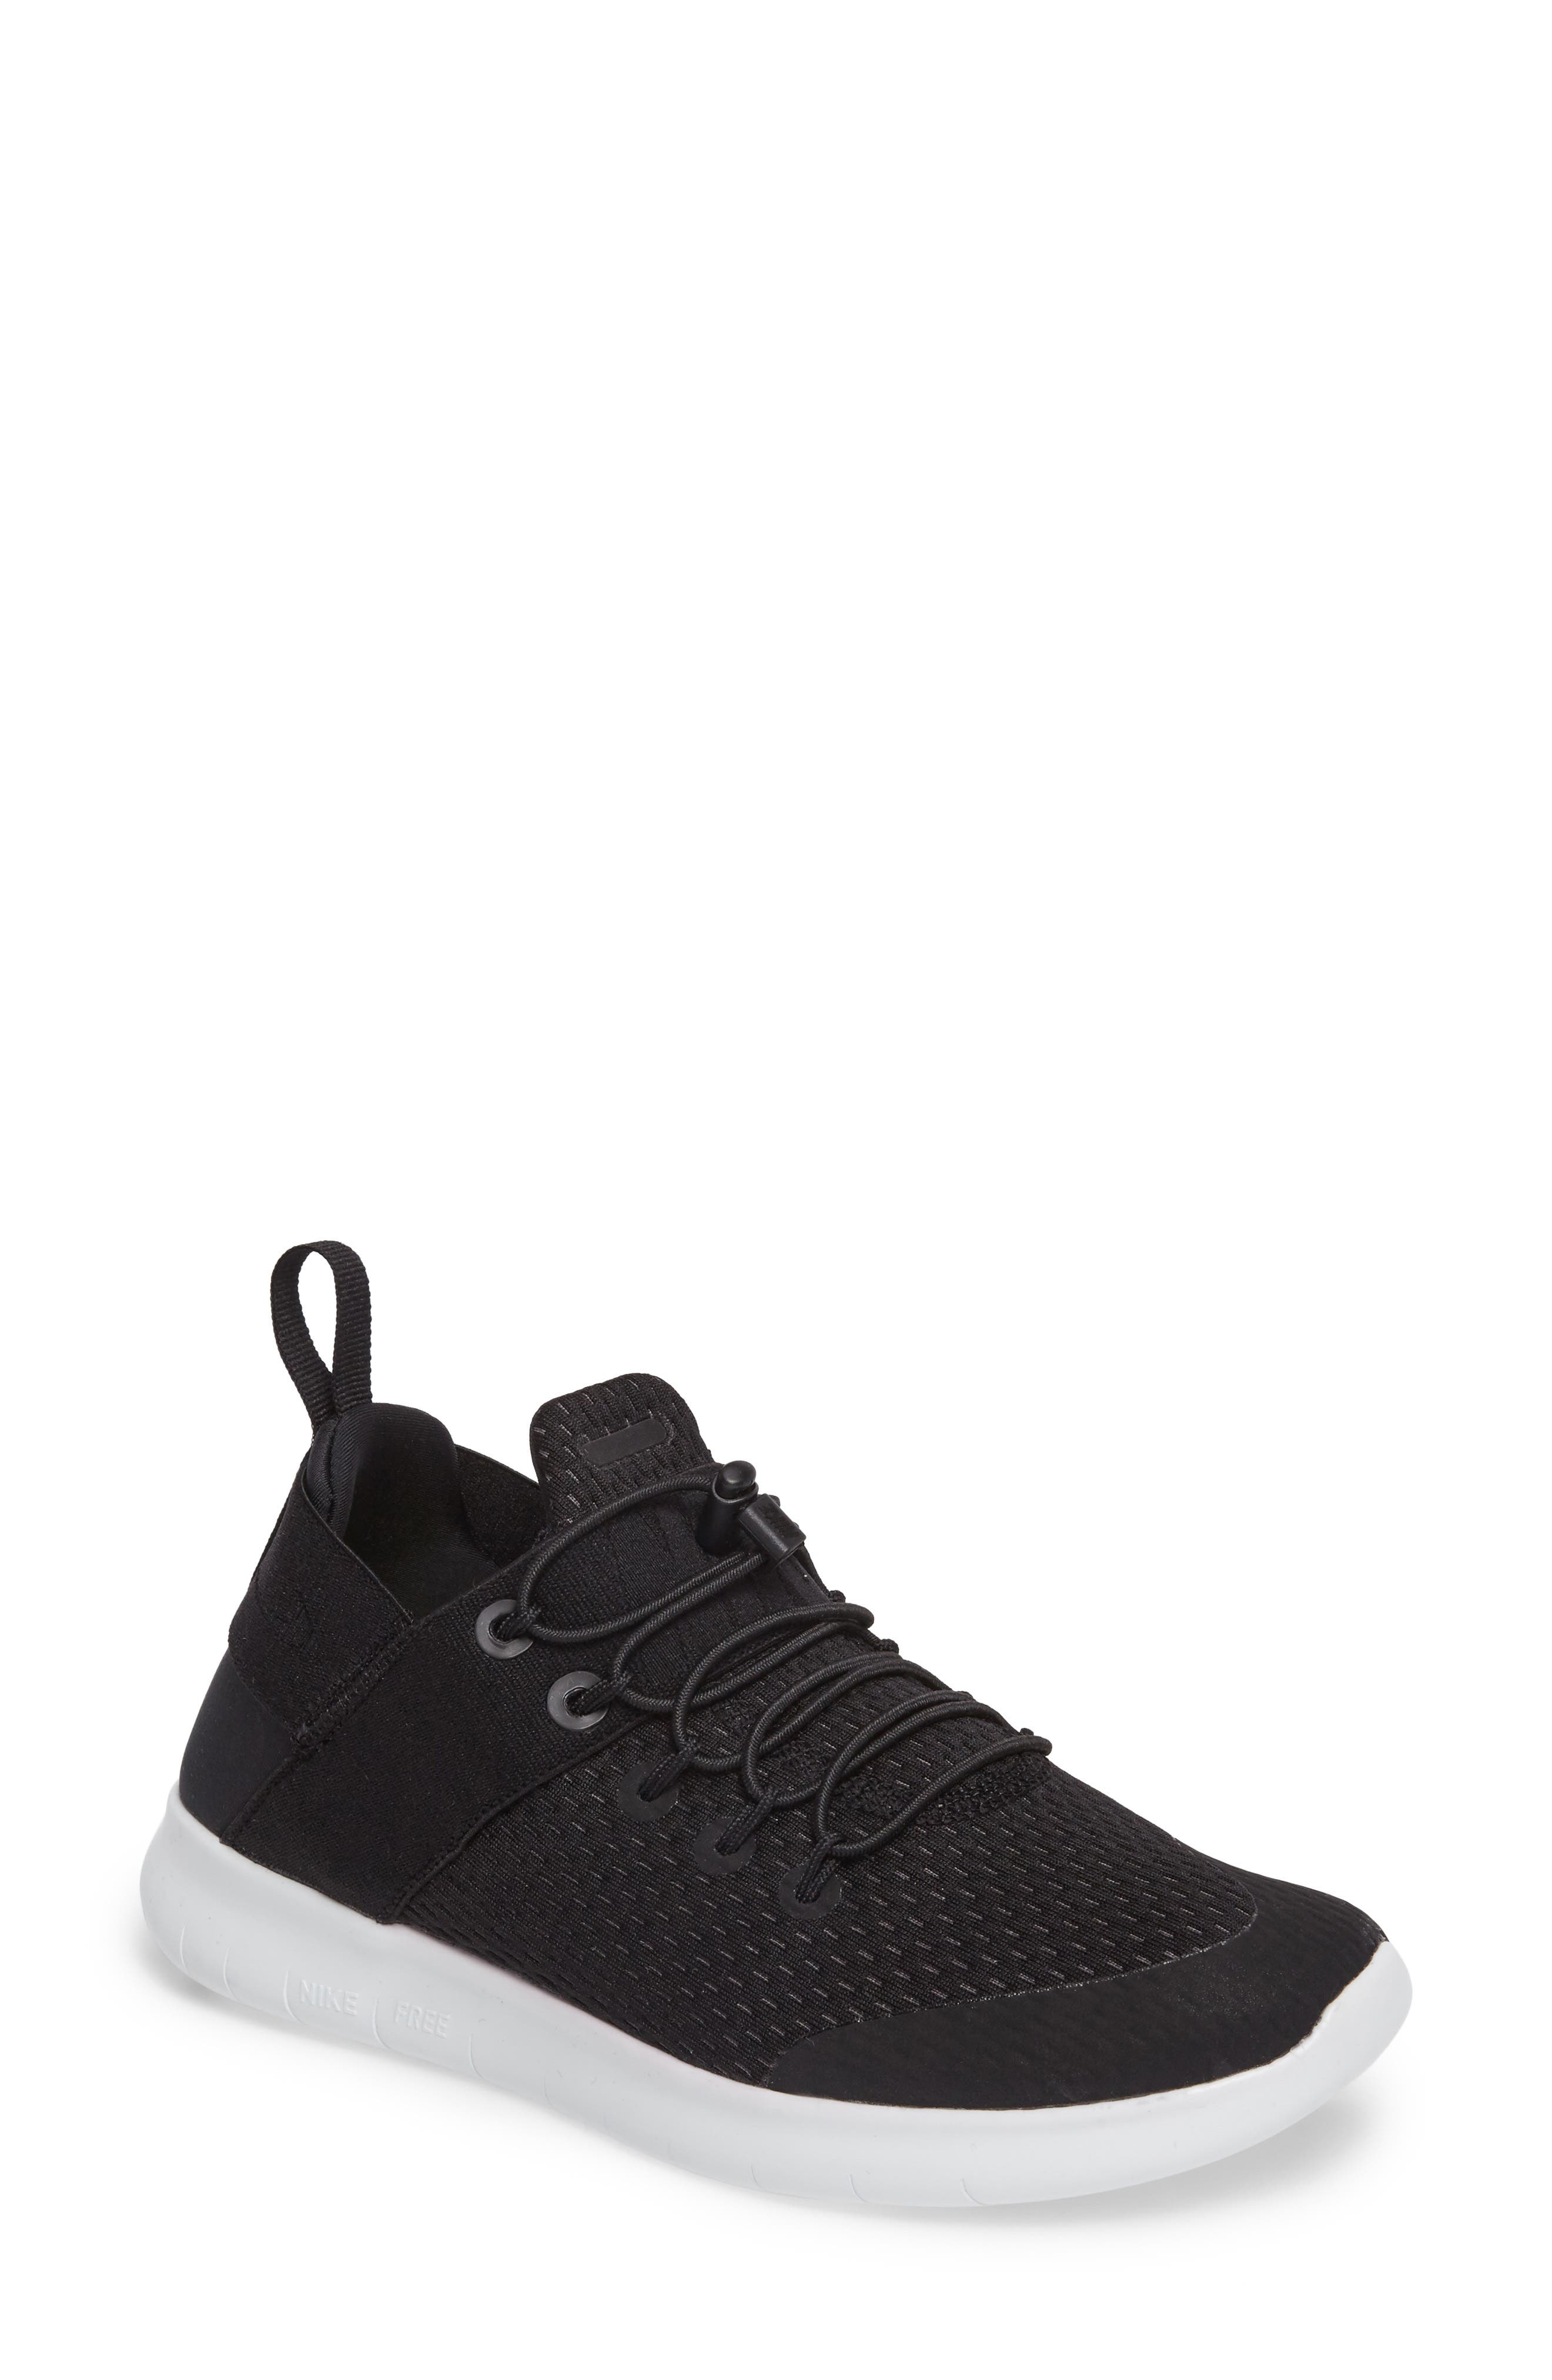 Free RN CMTR Running Shoe,                         Main,                         color, Black/ Anthracite/ Off White